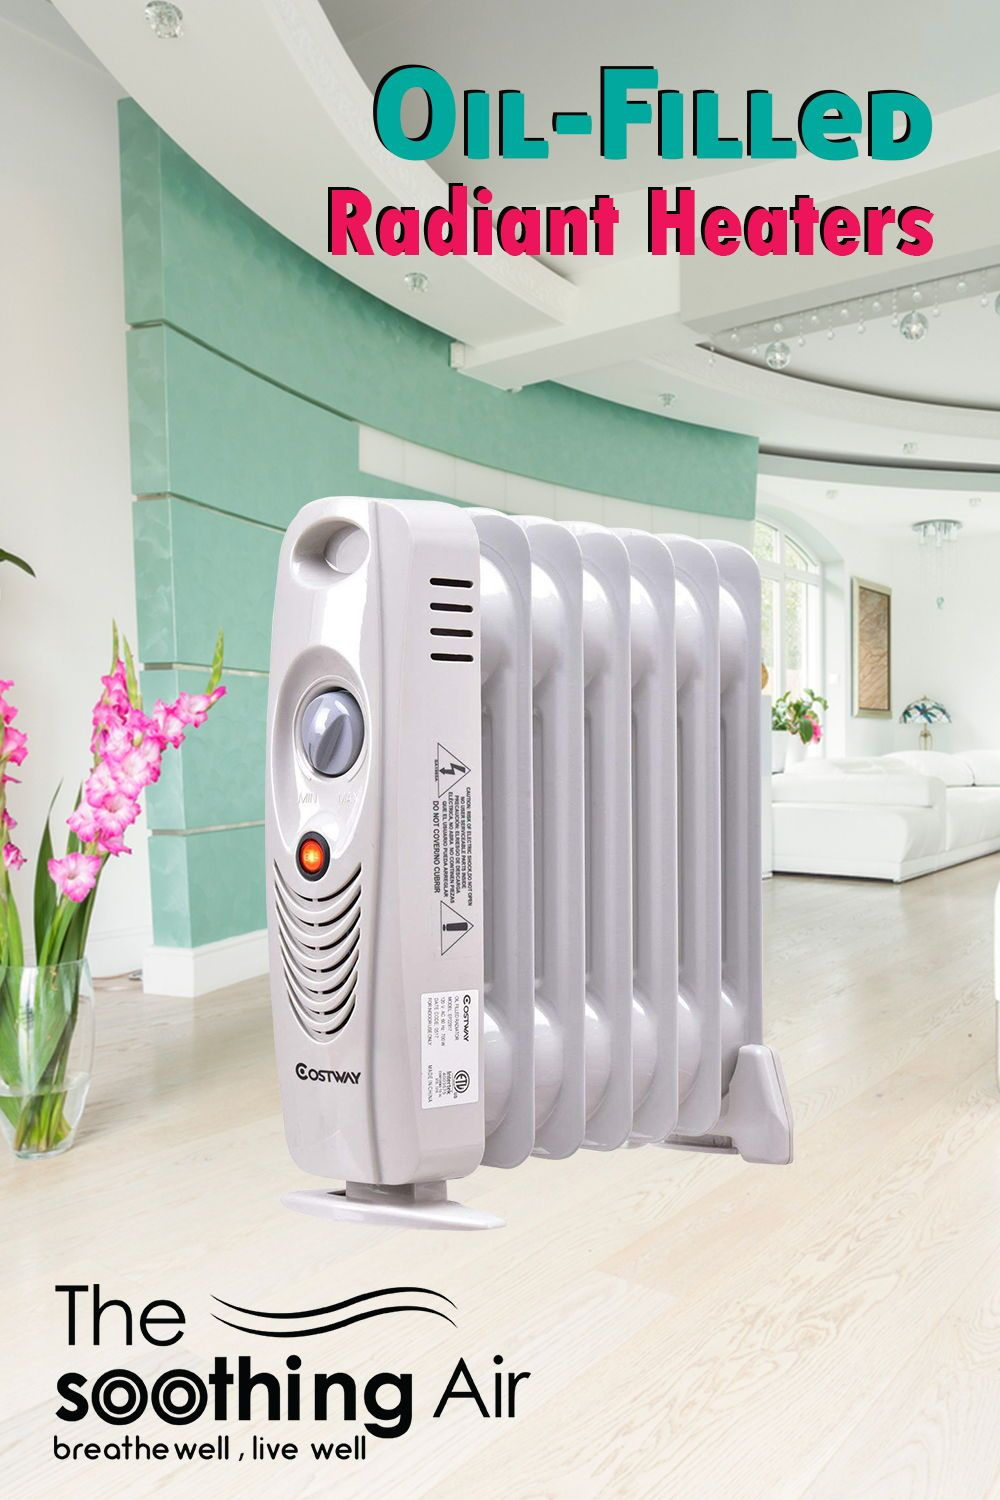 Top 10 Oil Filled Radiant Heaters Feb 2020 Reviews And Buyers Guide With Images Oil Heater Radiant Heaters Heater